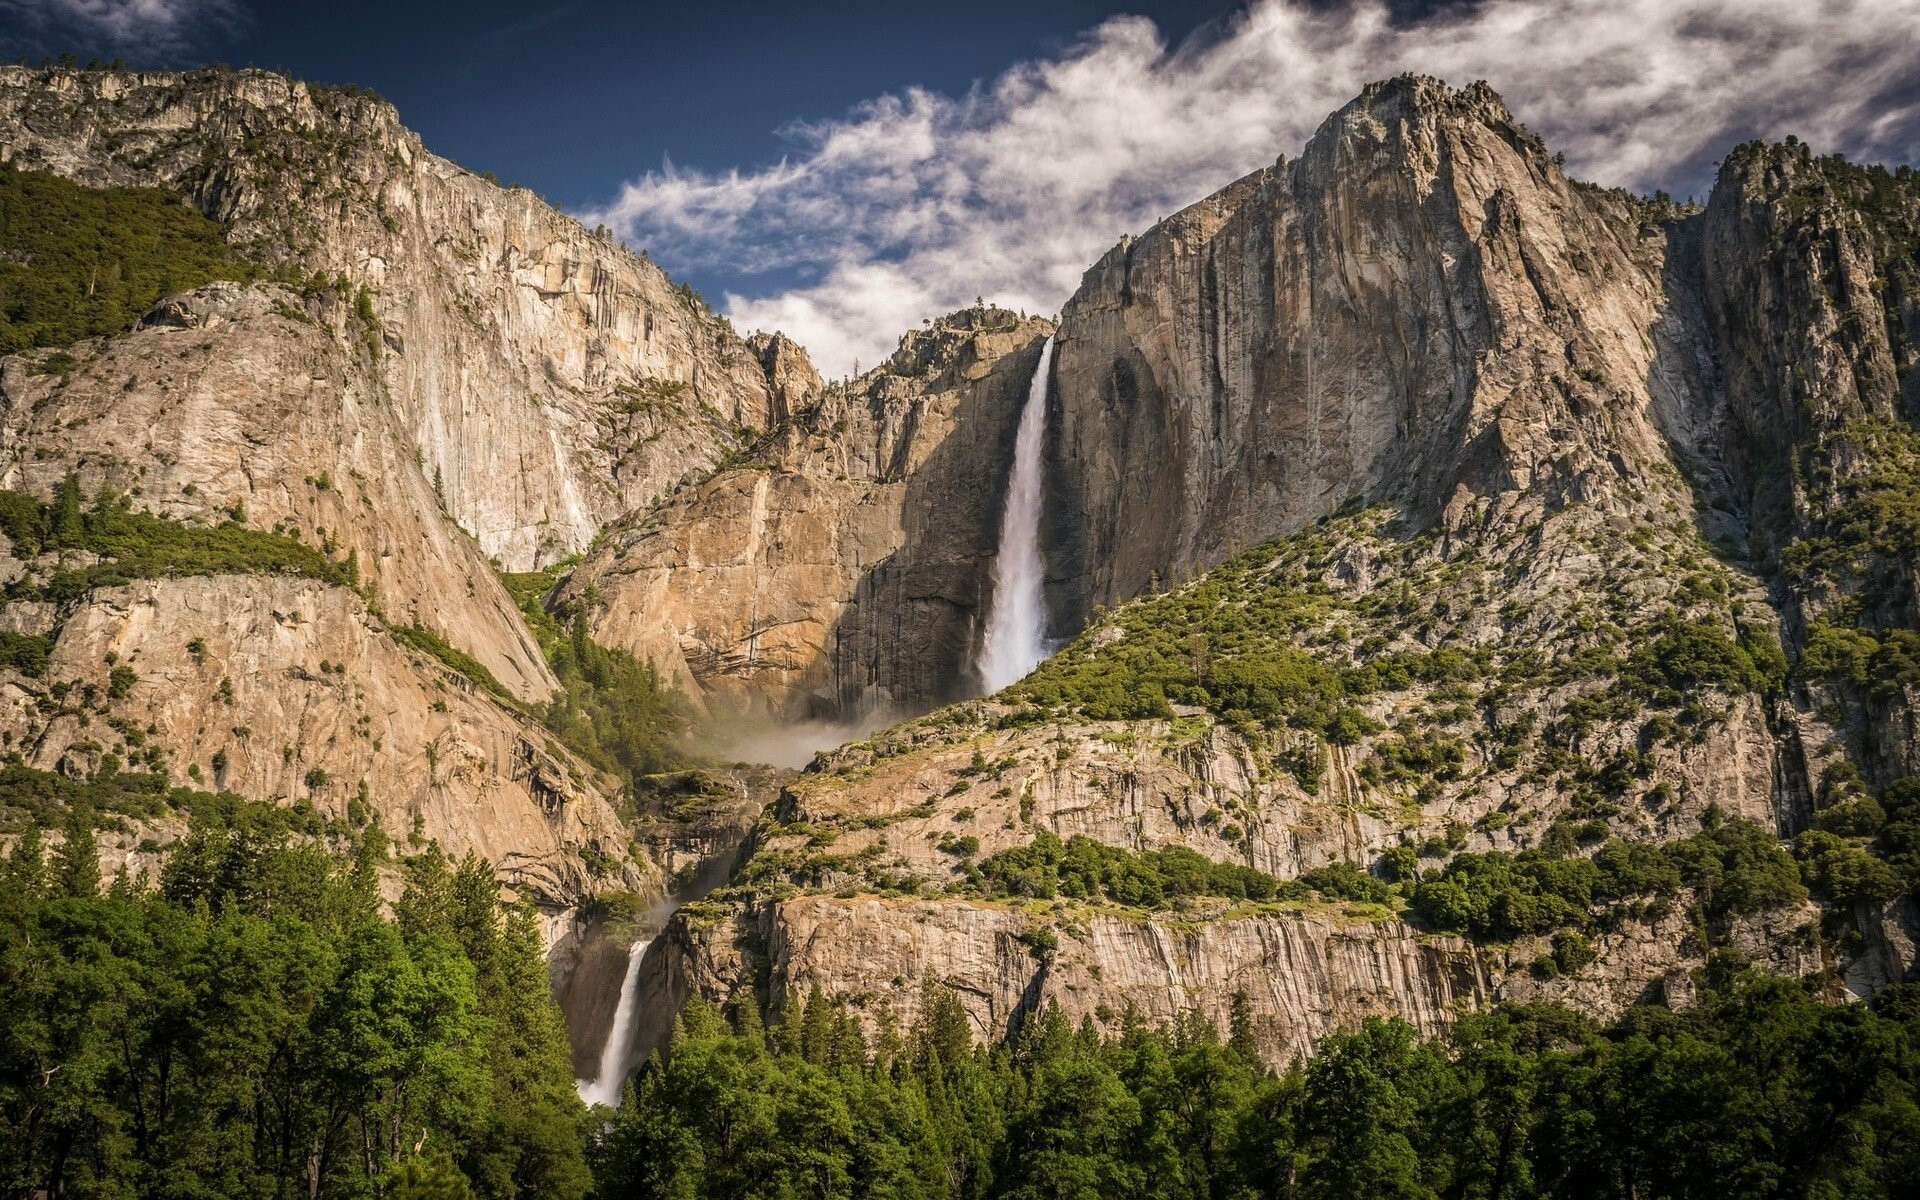 Waterfall in yosemite national park us wallpapers hd - Yosemite national park hd wallpaper ...